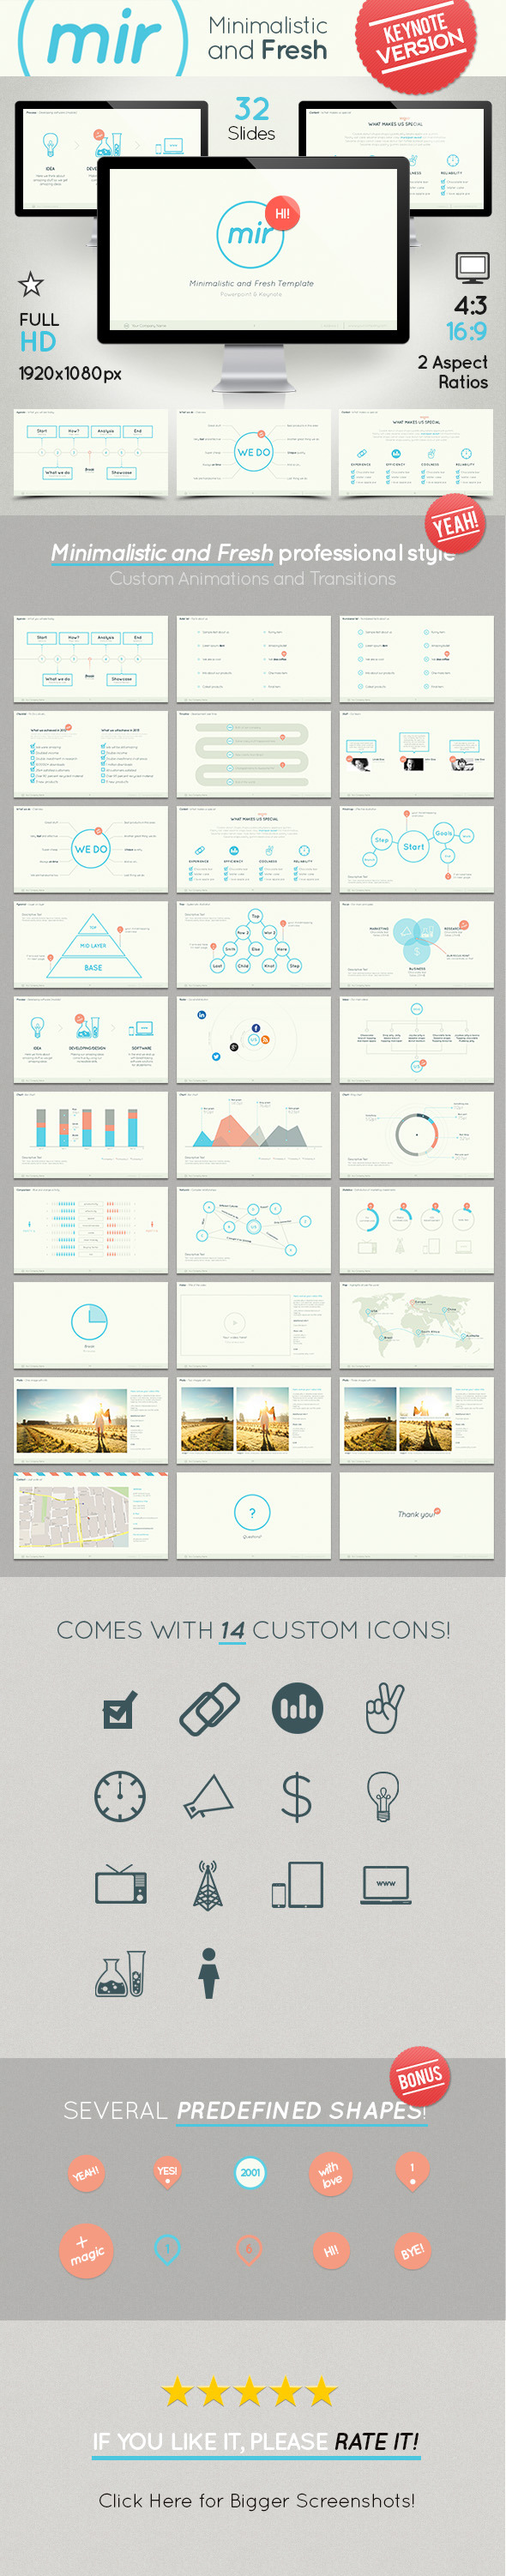 Mir- Minimalistic and Fresh Keynote Template - Keynote Templates Presentation Templates